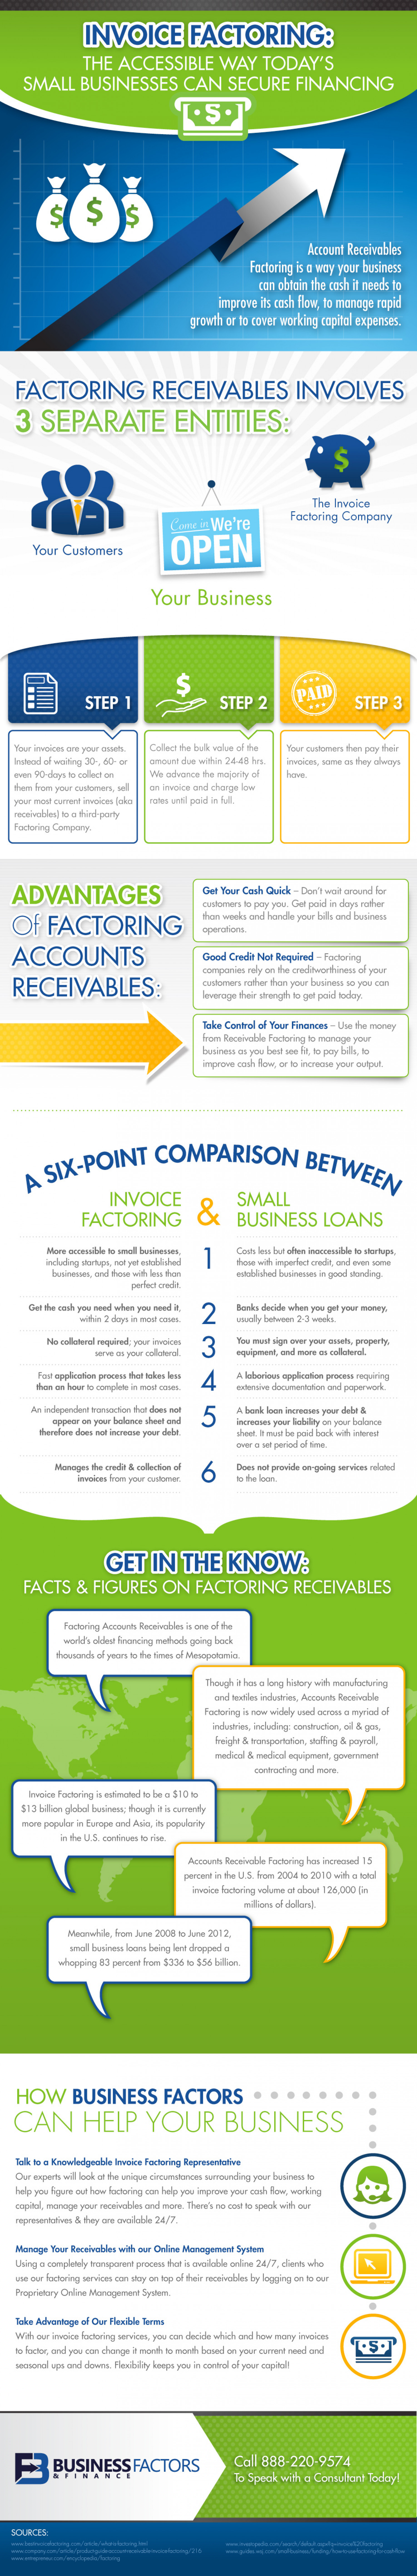 Invoice Factoring: The Accessible Way Today's Small Businesses Can Secure Financing  Infographic